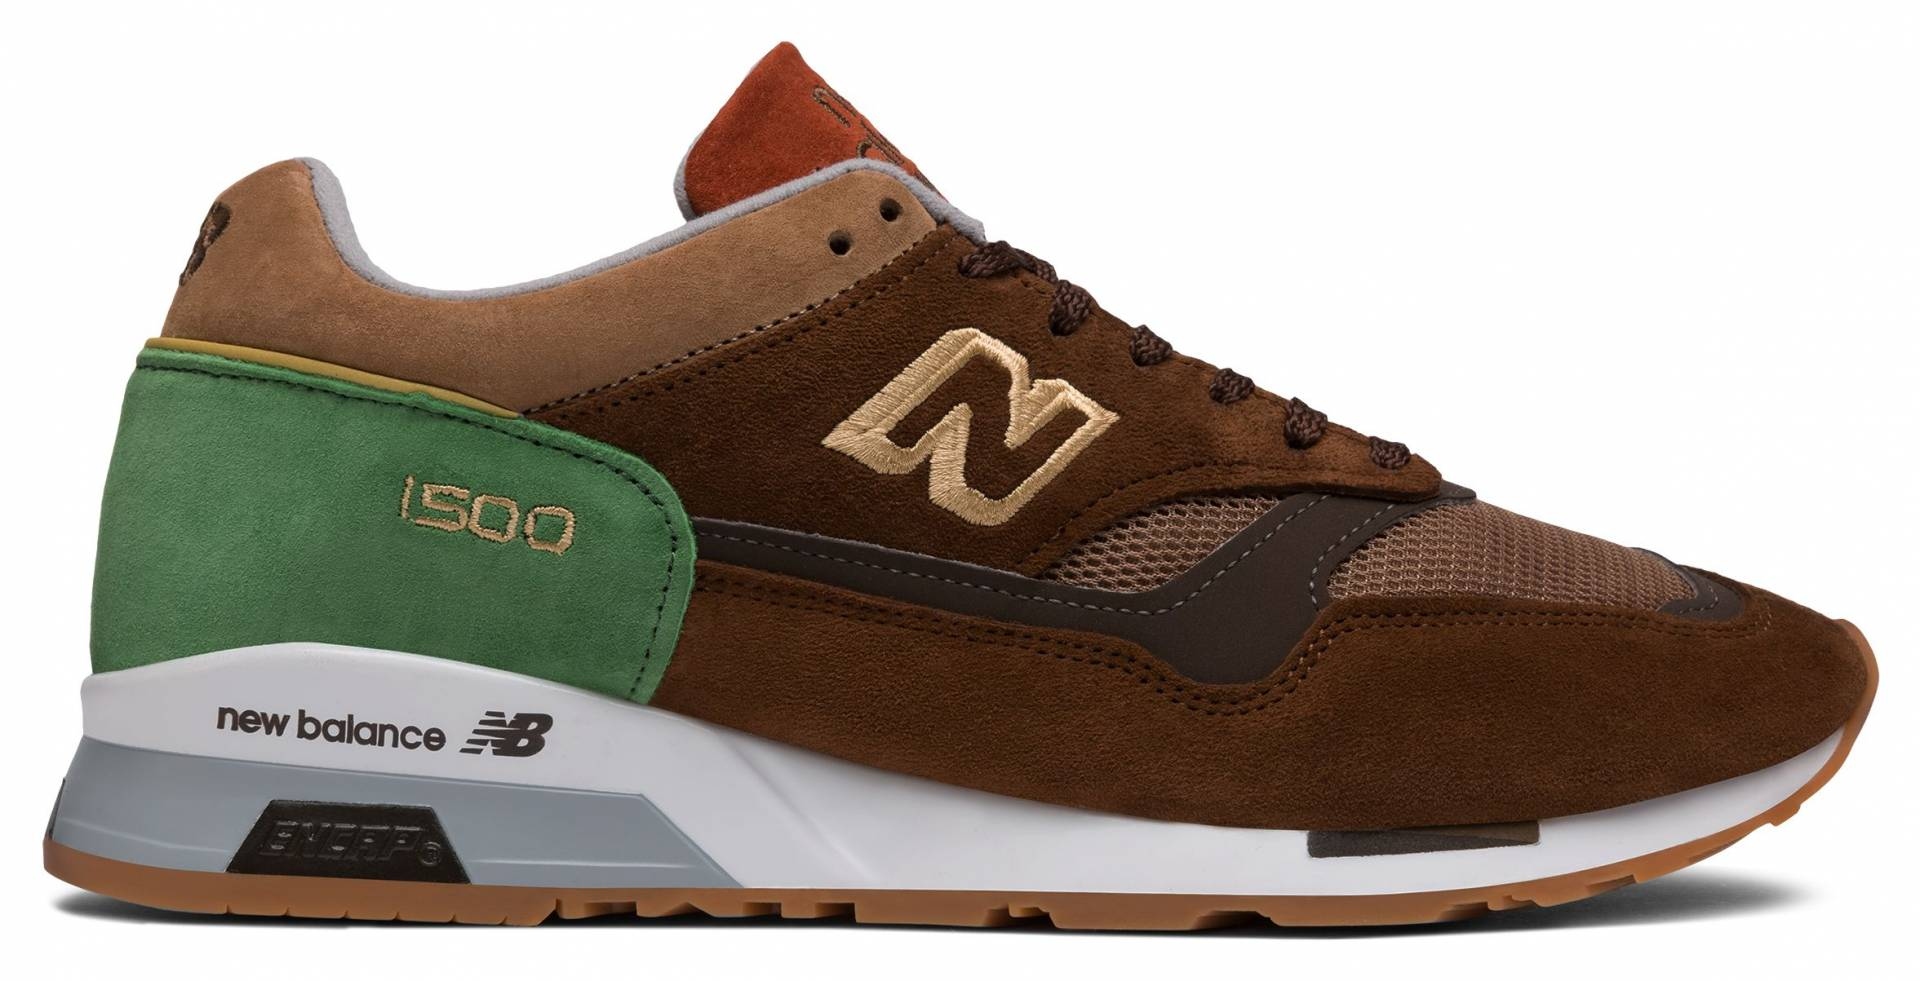 1500 Made in UK de Brown with Green